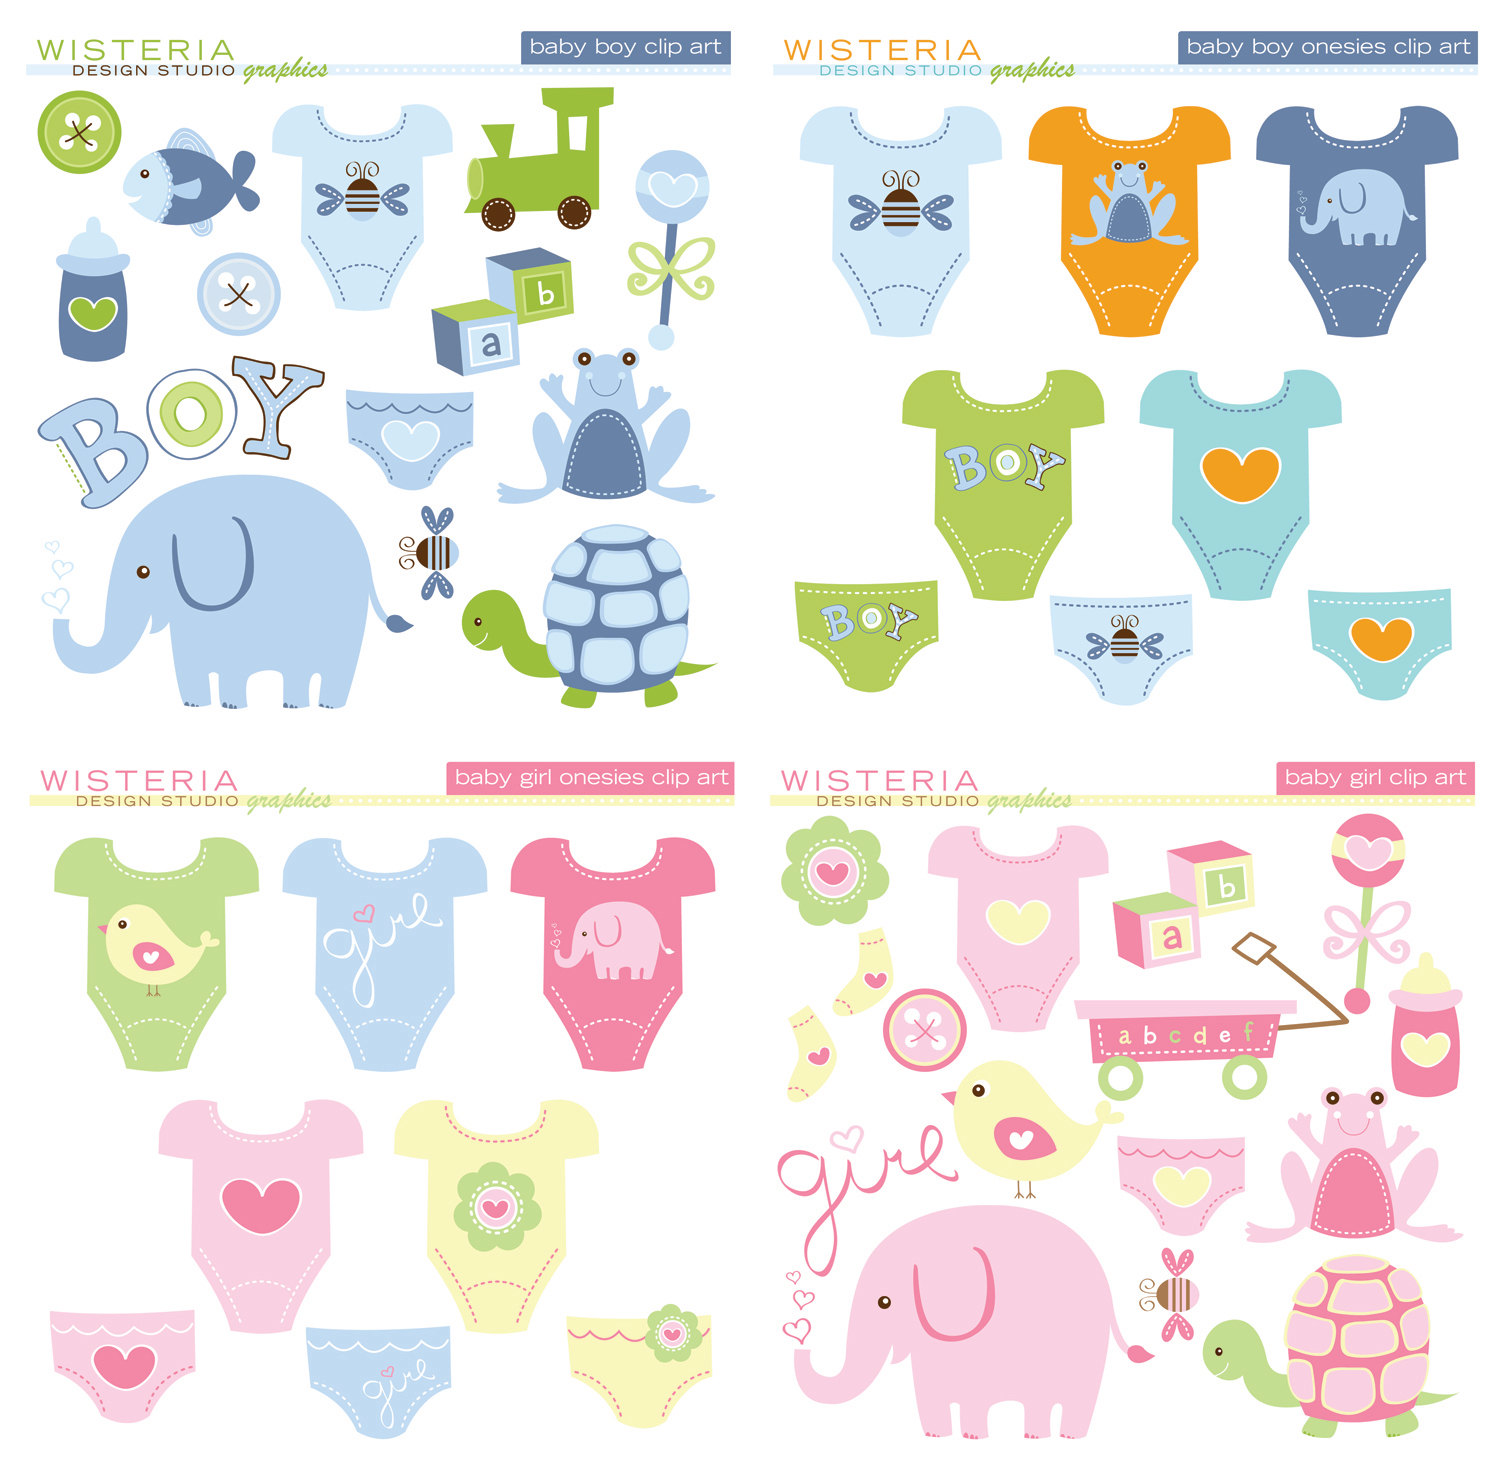 Baby Designs Clipart - Clipart Kid